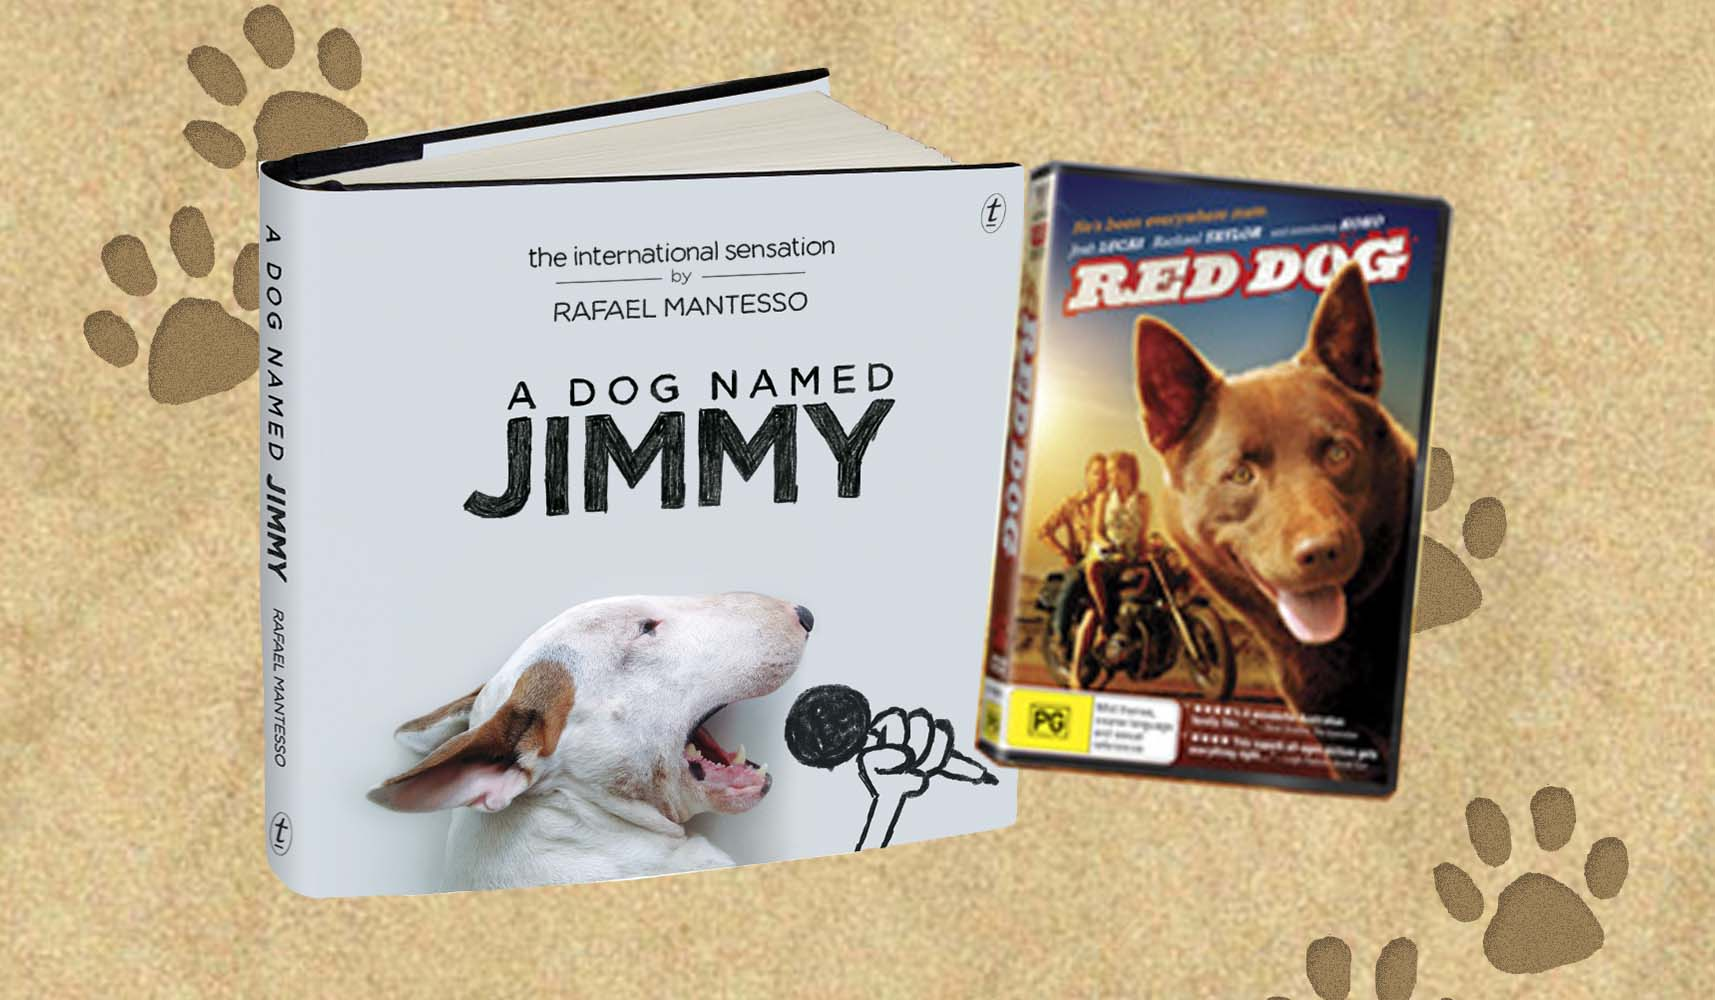 A Dog Named Jimmy/Red Dog Giveaway